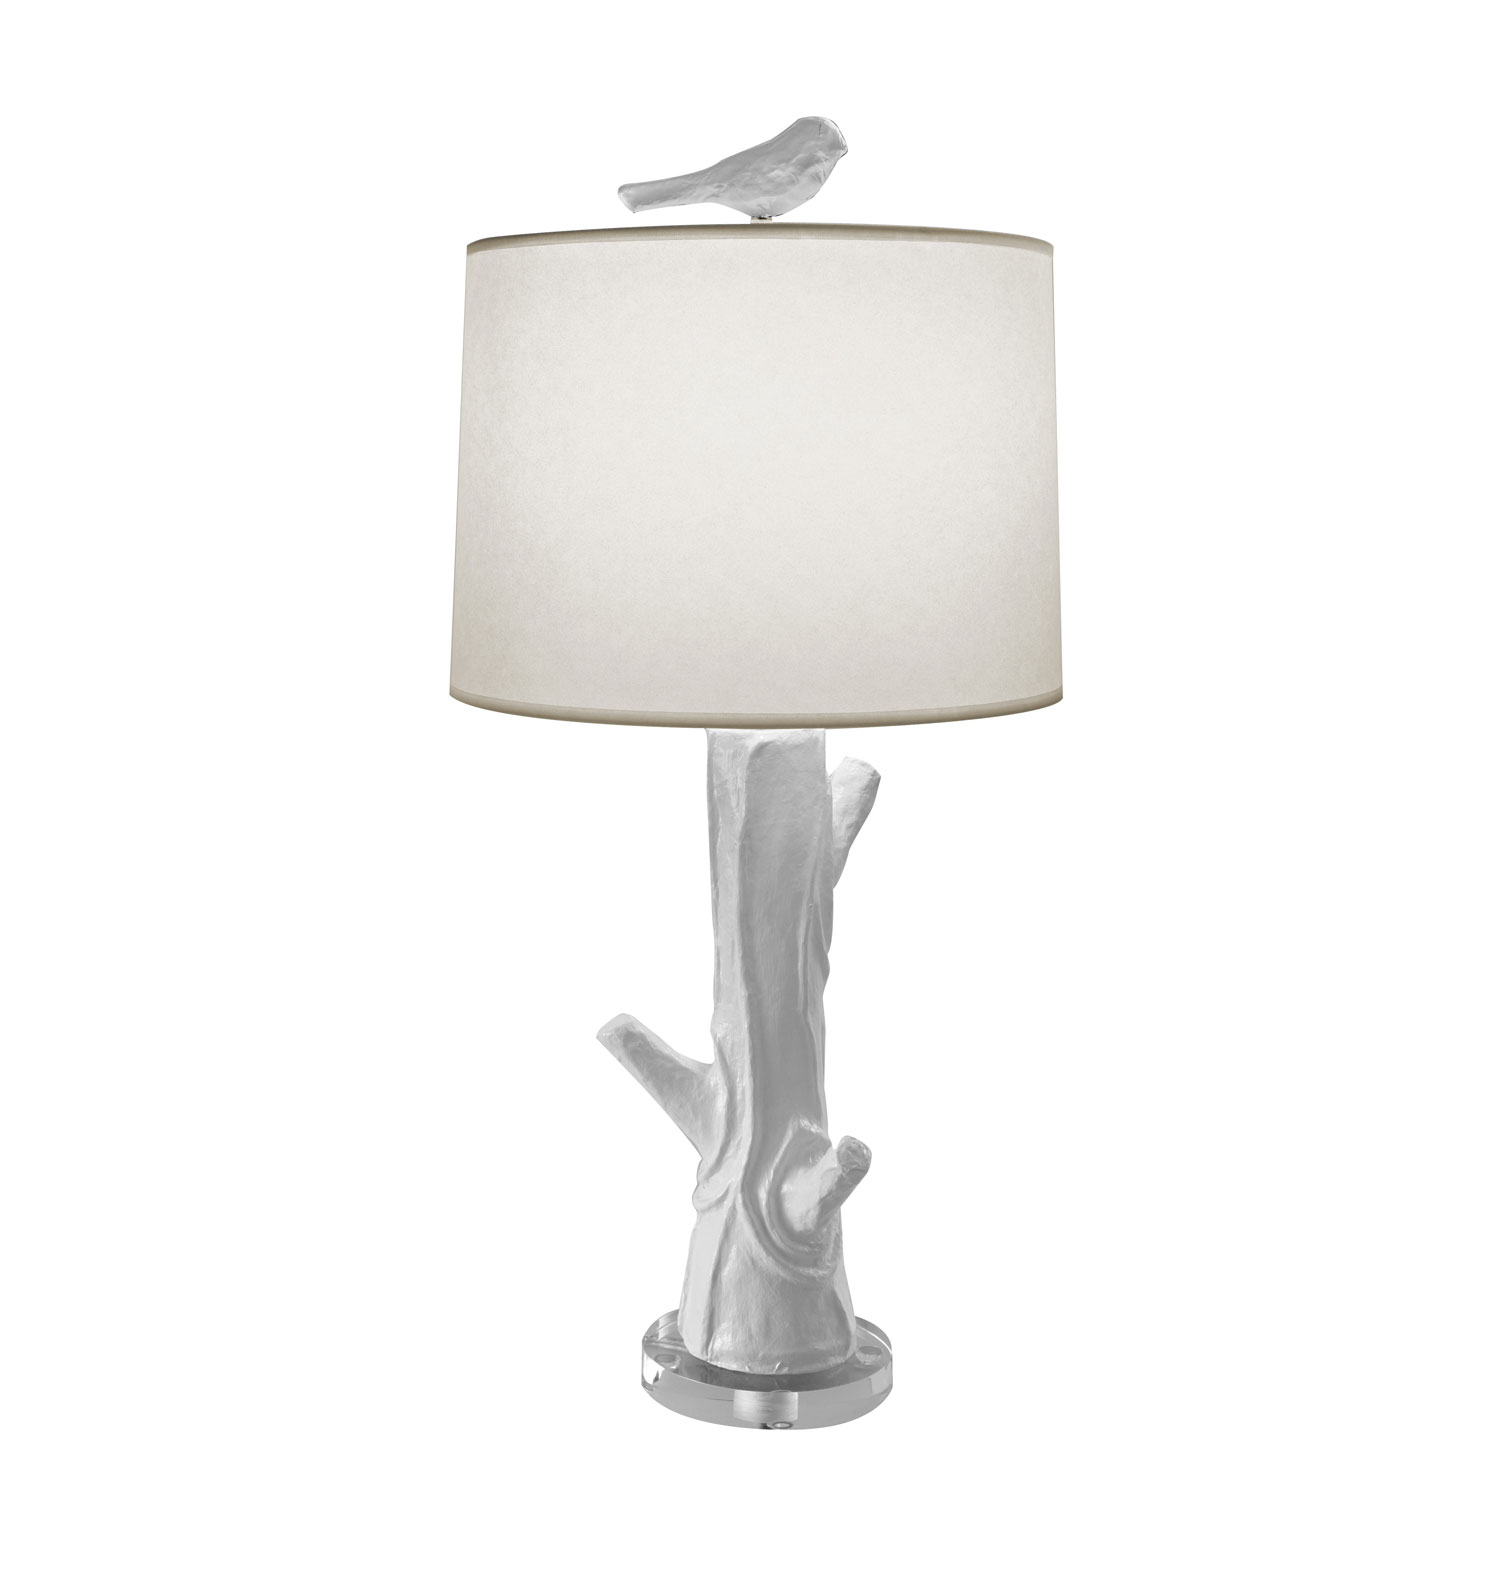 Bird table lamp - 10 types of lamp gaining attraction in interior ...